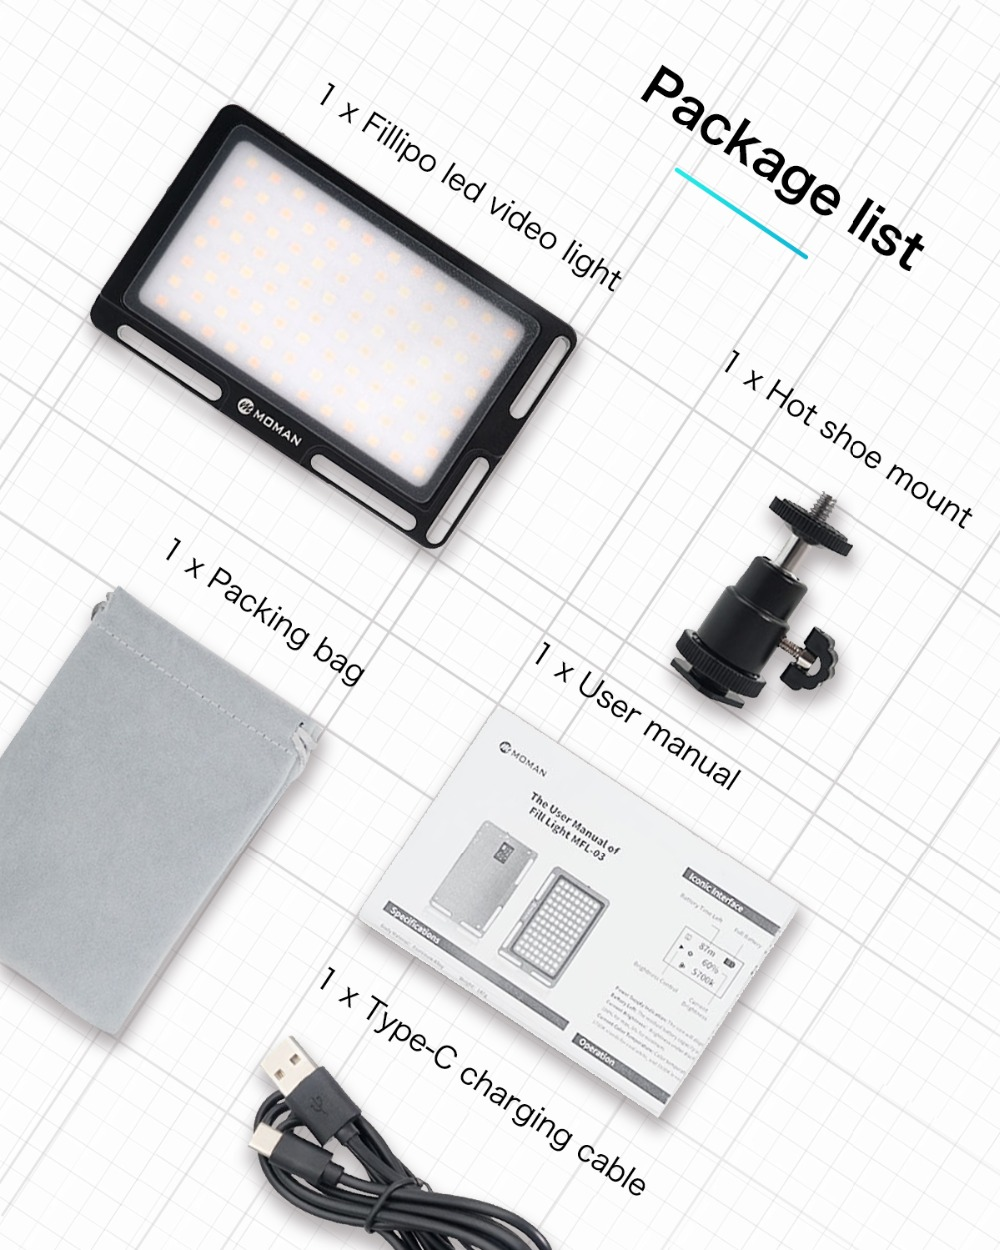 Image 5 - Moman Mini 4.5 Inch On Camera LED Video Light with Magnetic Back Bi Color 3000K 6500K CRI96+ Filming Lighting-in Photographic Lighting from Consumer Electronics